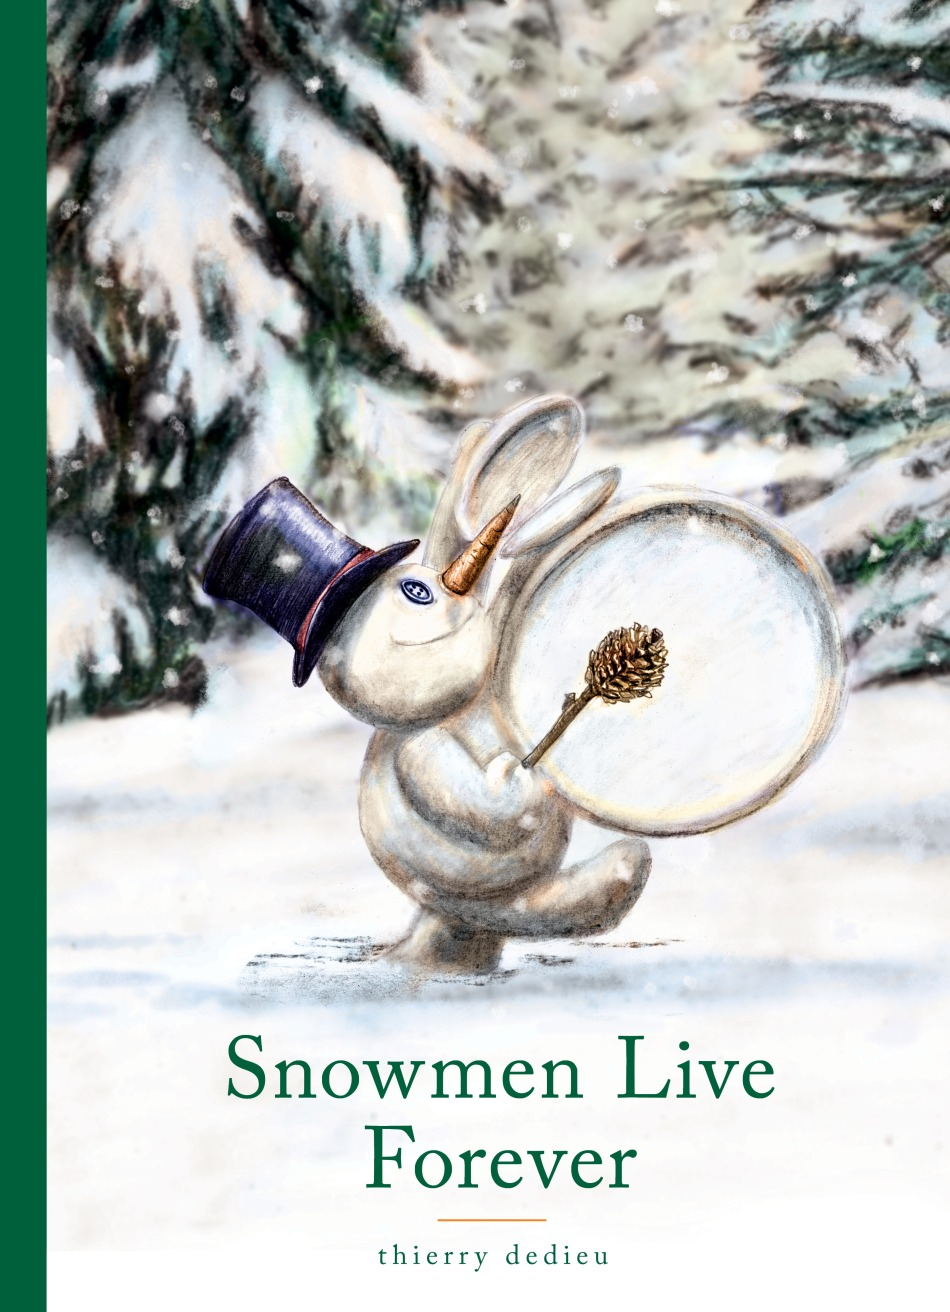 Snowmen Live Forever Written and illustrated by Thierry Dedieu